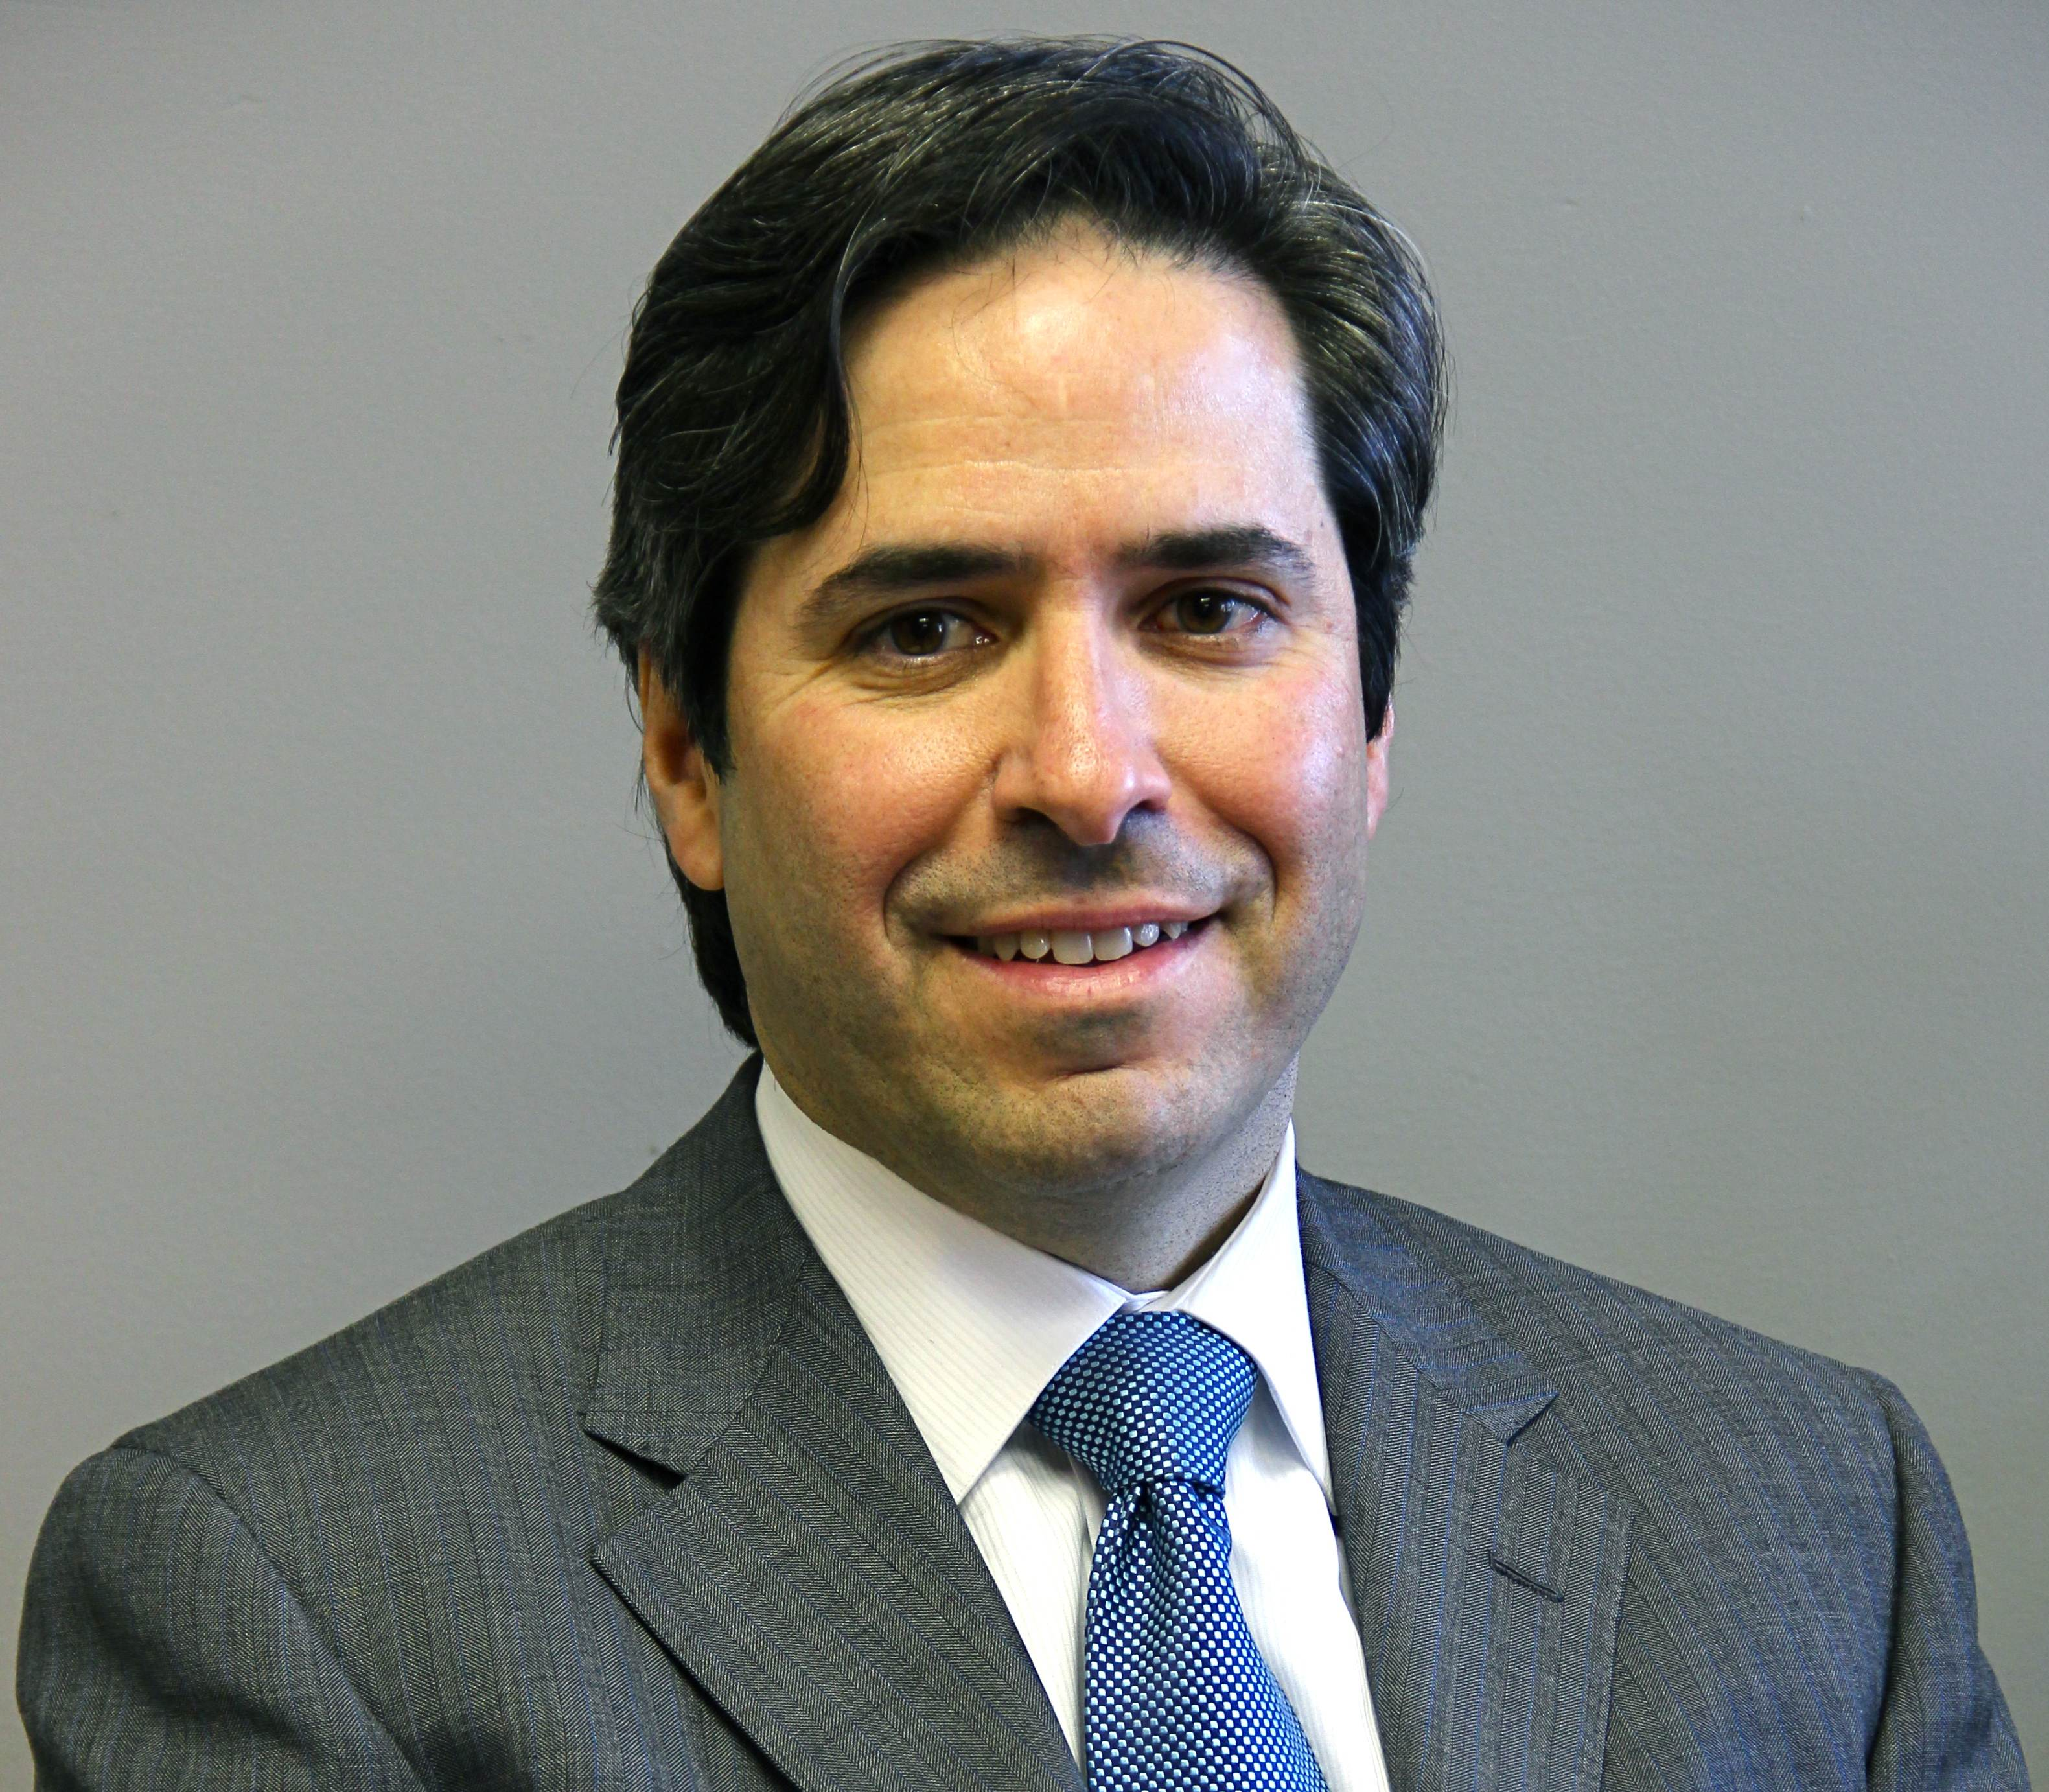 Stephen G Pereira, MD